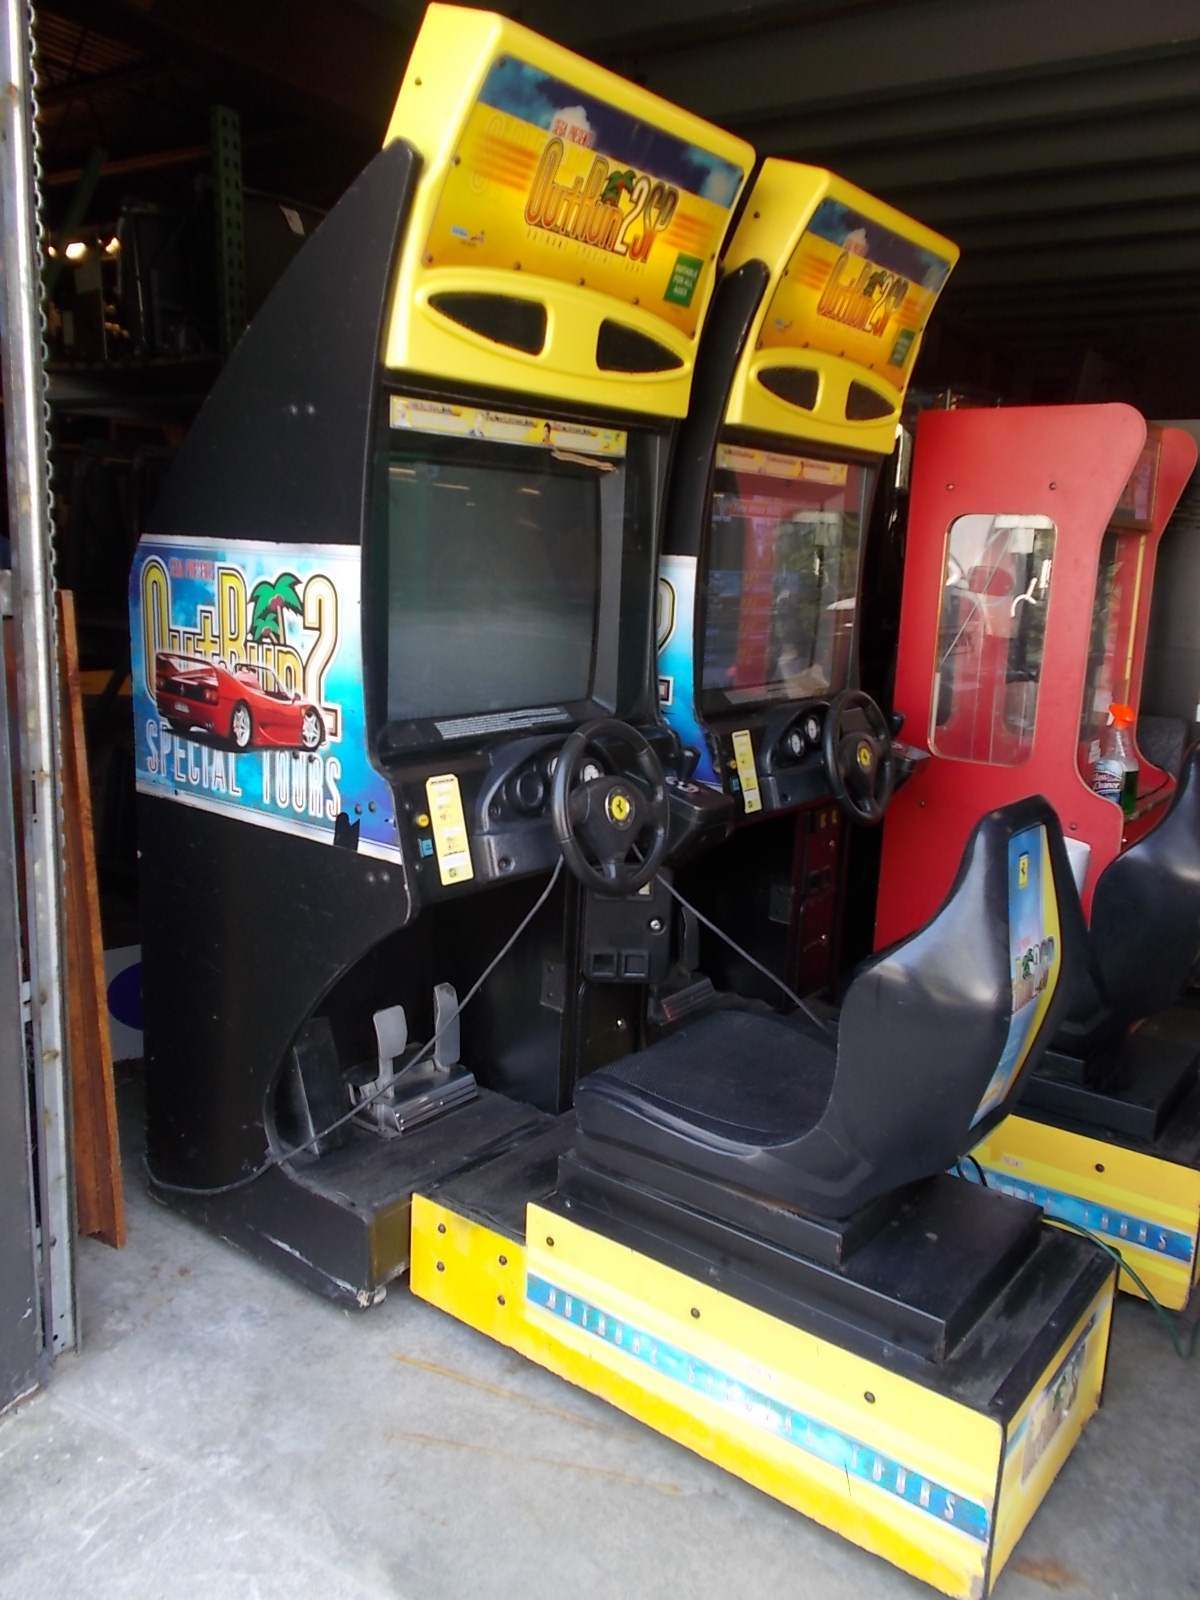 OUT RUN 2 SP Sit Down Arcade Machine Game For Sale By SEGA   FERRARI  TESTAROSSA RACING!